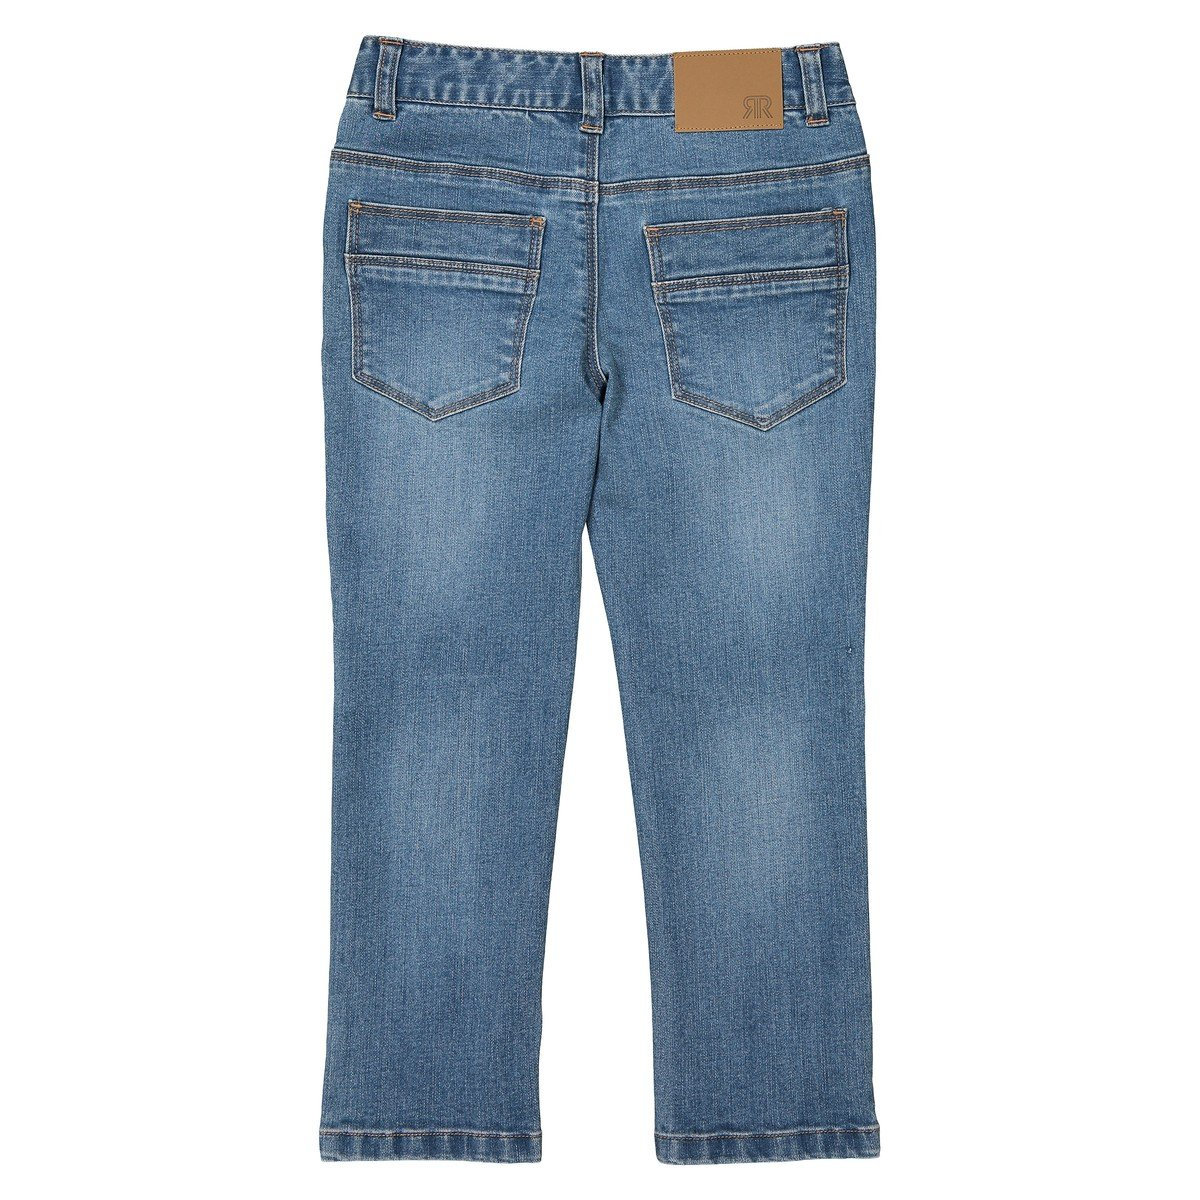 La Redoute Collections Big Boys Straight Jeans Full Fit 3-12 Years